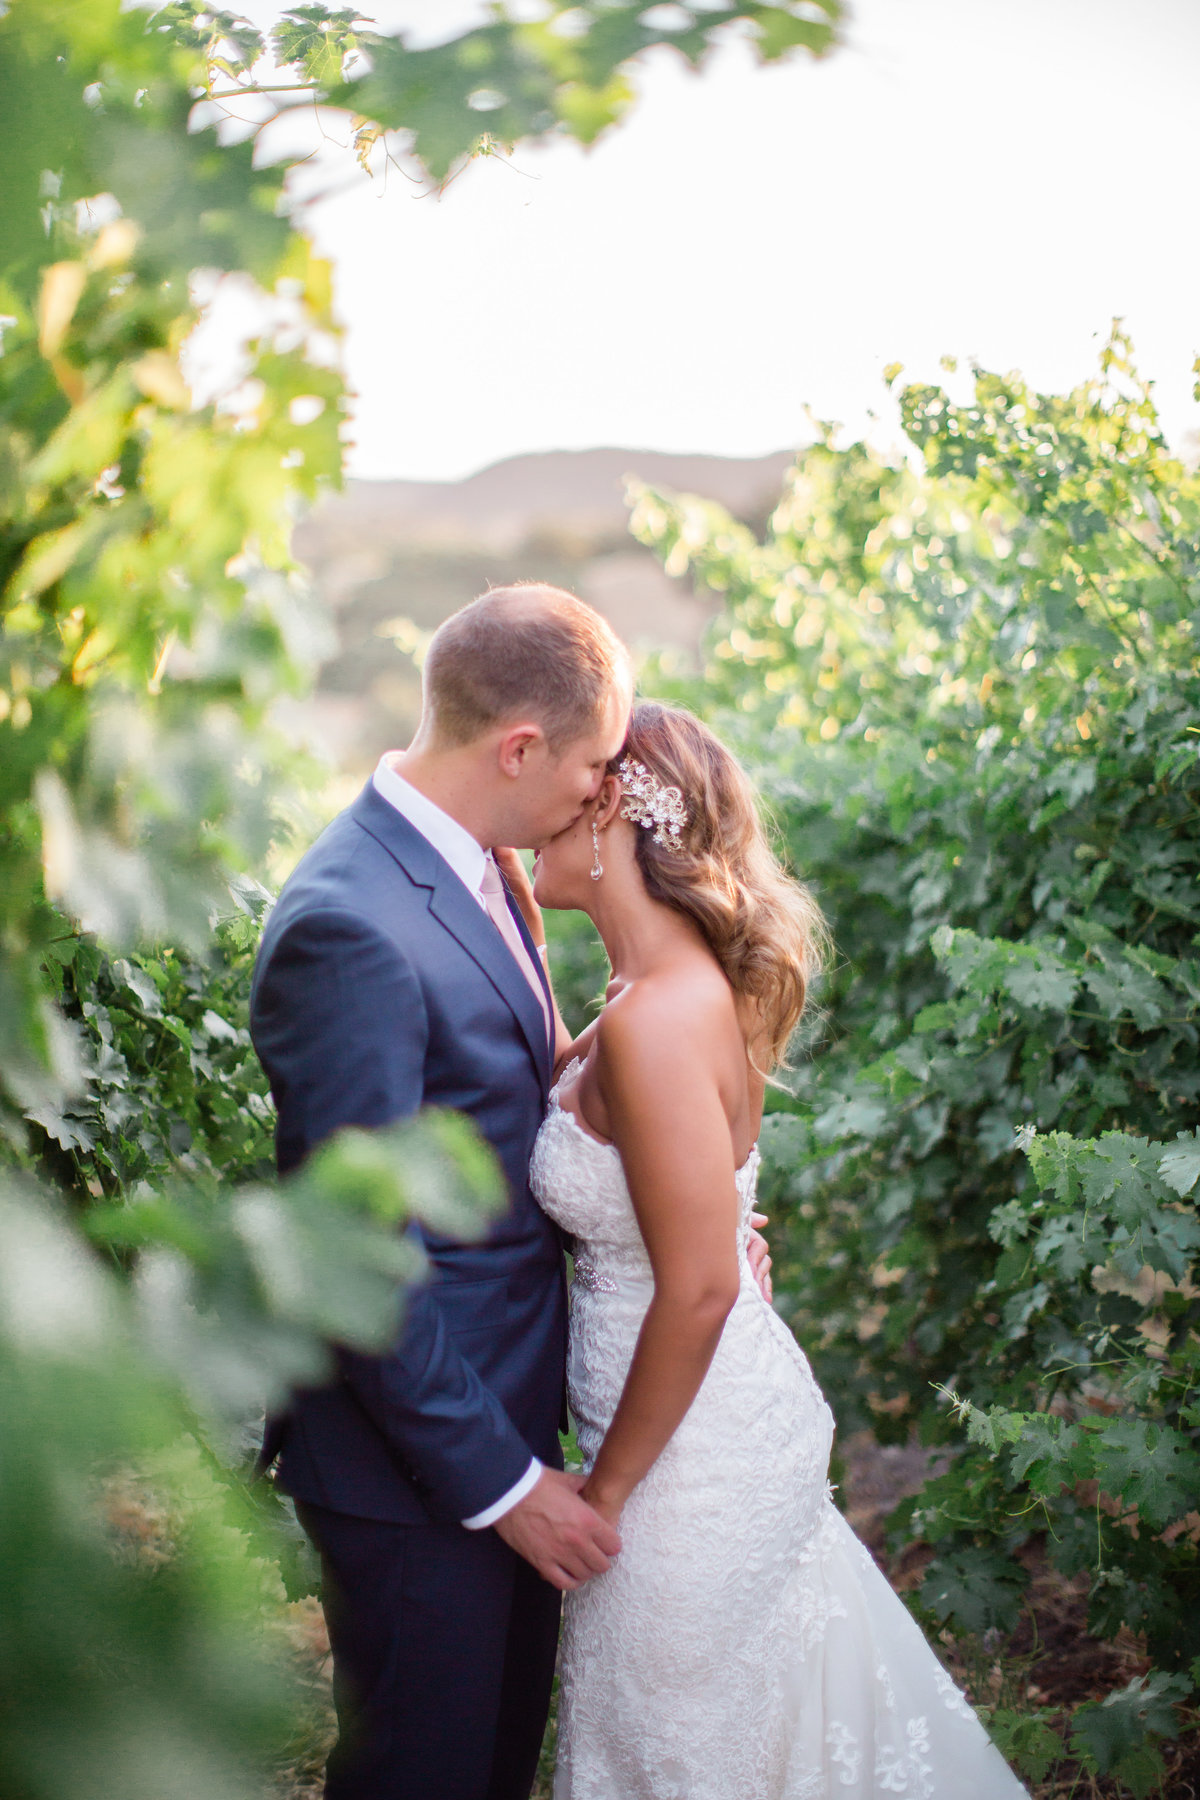 Jenna & Andrew's Oyster Ridge Wedding | Paso Robles Wedding Photographer | Katie Schoepflin Photography532